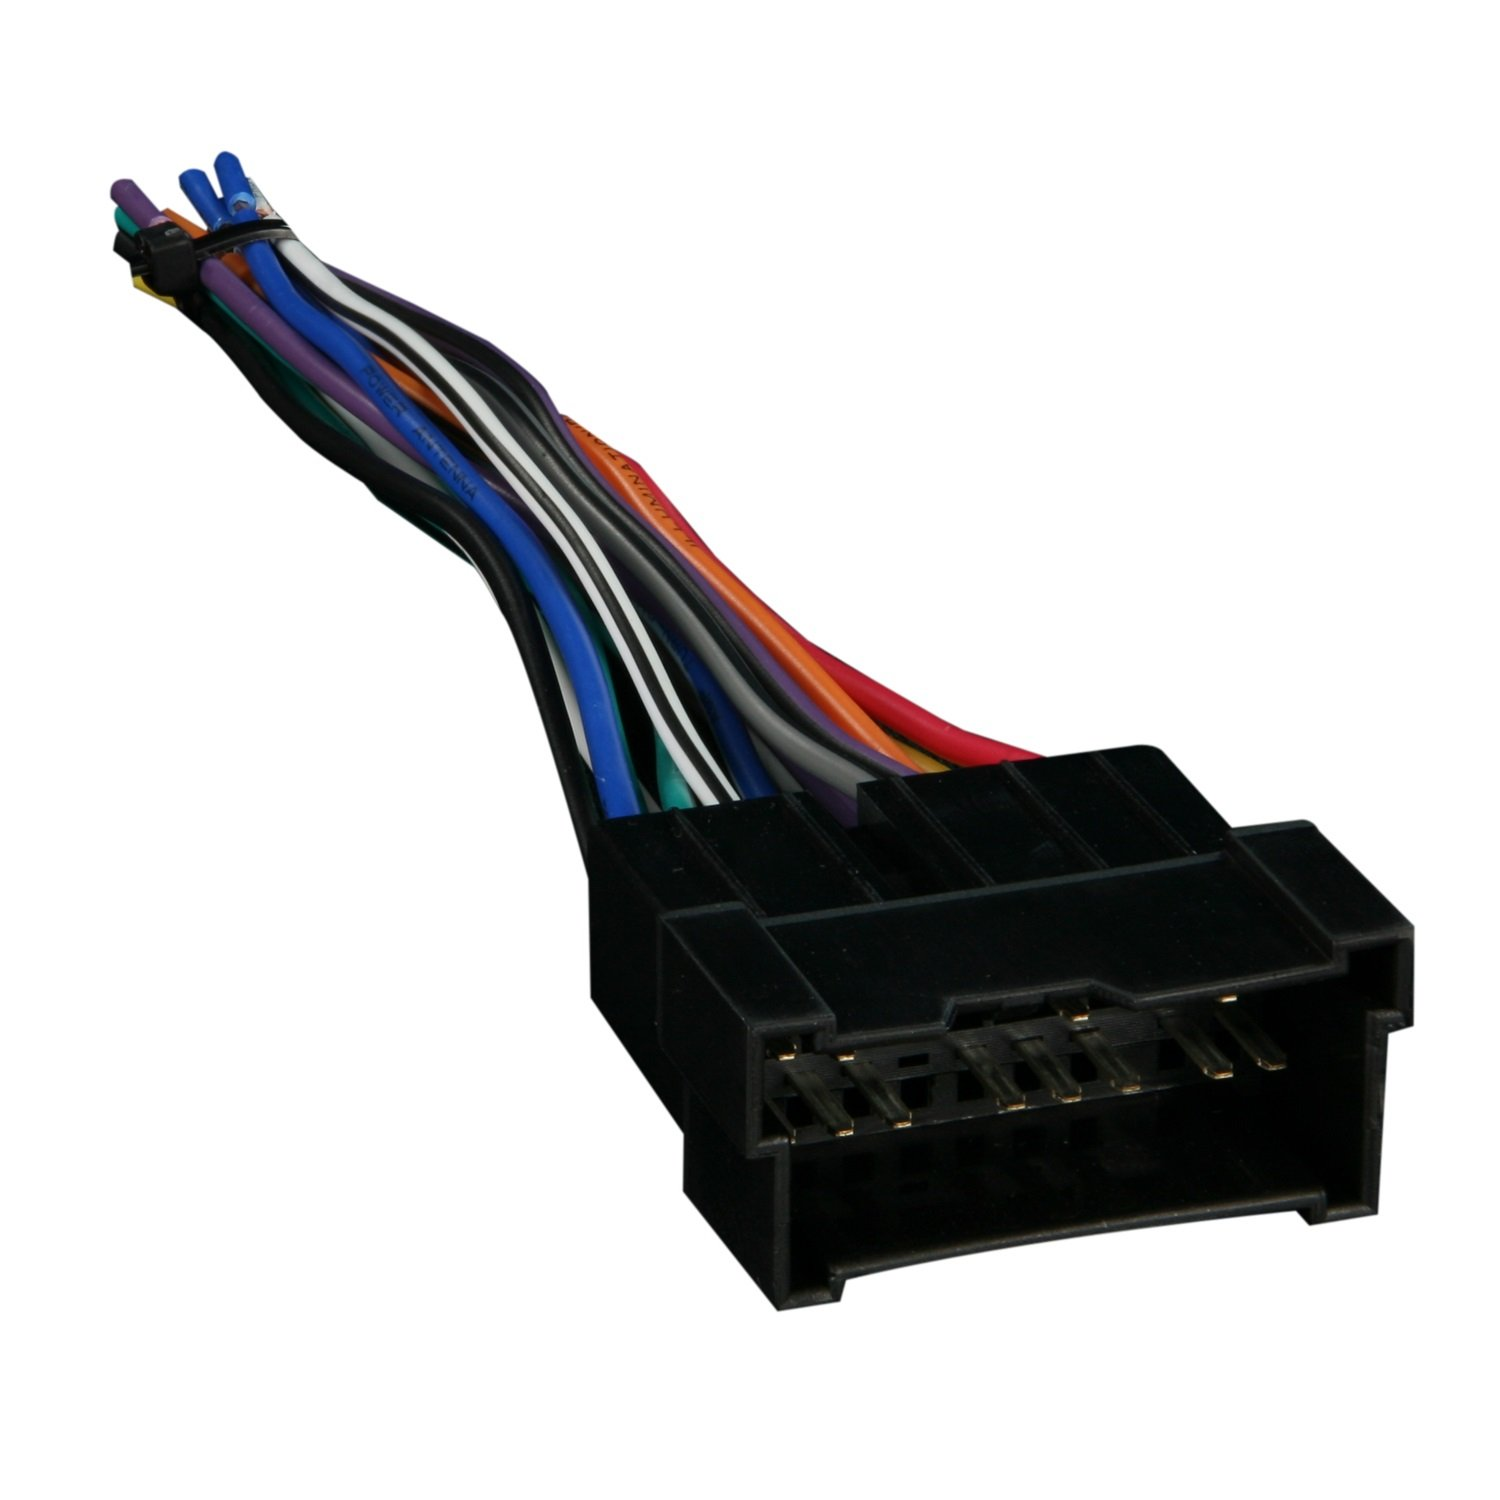 617yeBmOquL._SL1500_ amazon com metra 70 7301 radio wiring harness for hyundai kia 99 2003 Kia Sorento U Joint at reclaimingppi.co